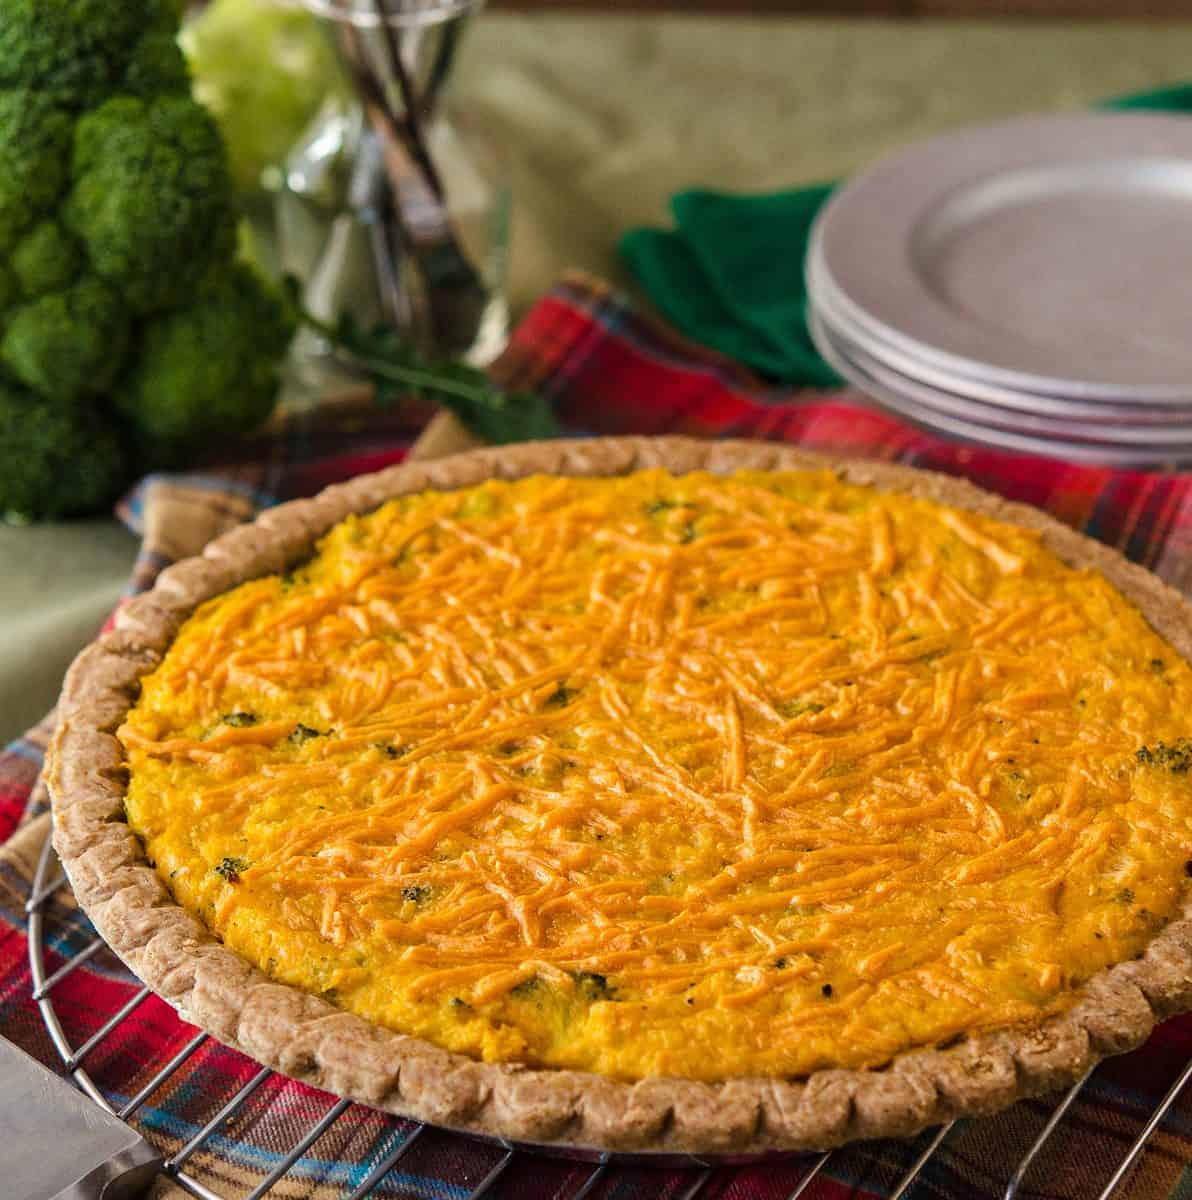 Broccoli Cheddar Quiche